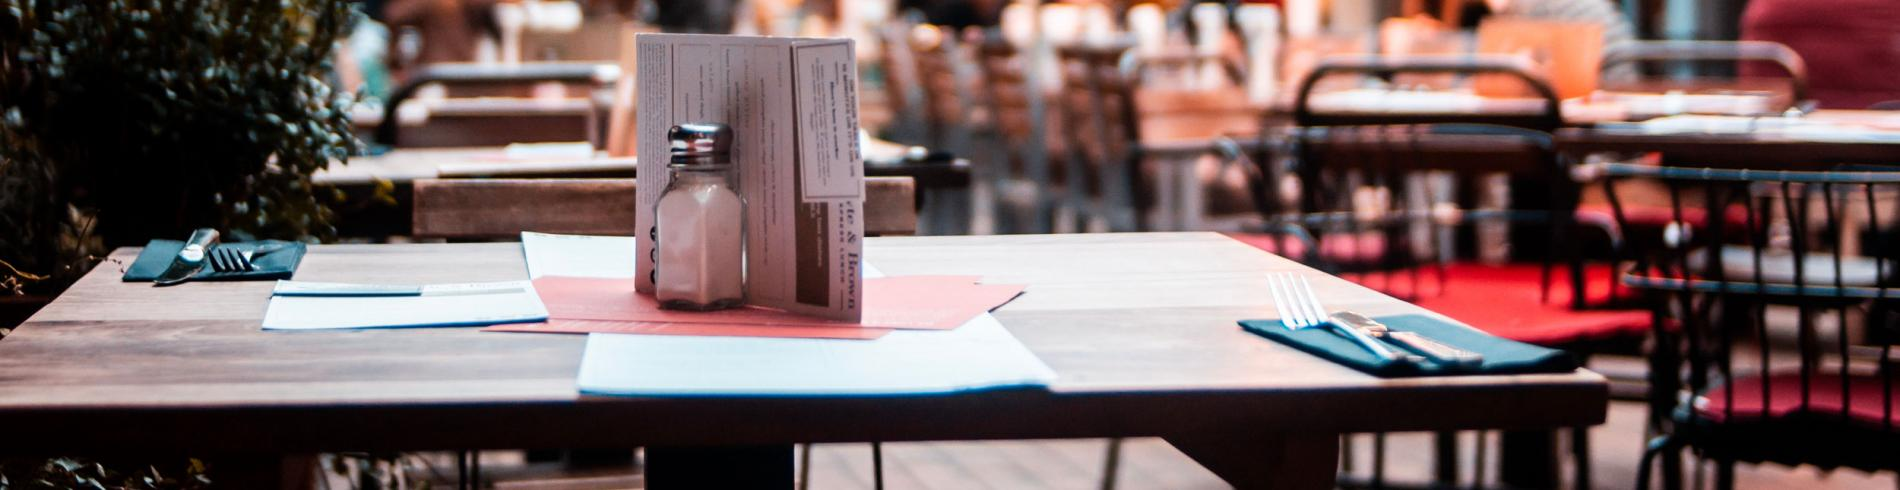 Table in a restaurant in soho